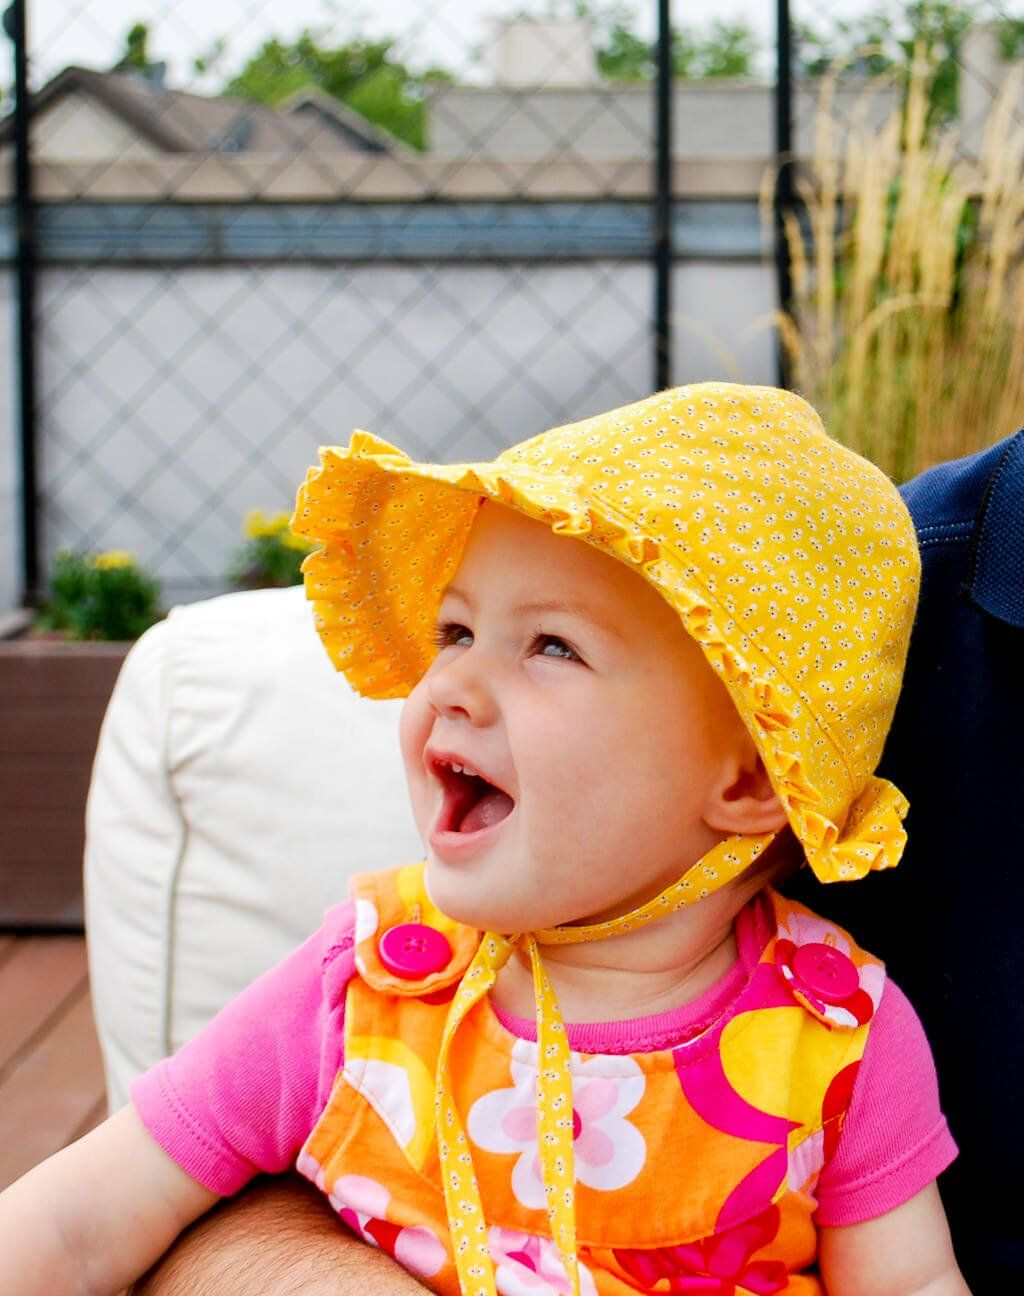 Baby bonnet pattern - free sewing pattern. Make this baby sun hat with cute ruffle and ties for the summer! Makes a great DIY baby gift. #baby #free #sewing #pattern #bonnet #hat